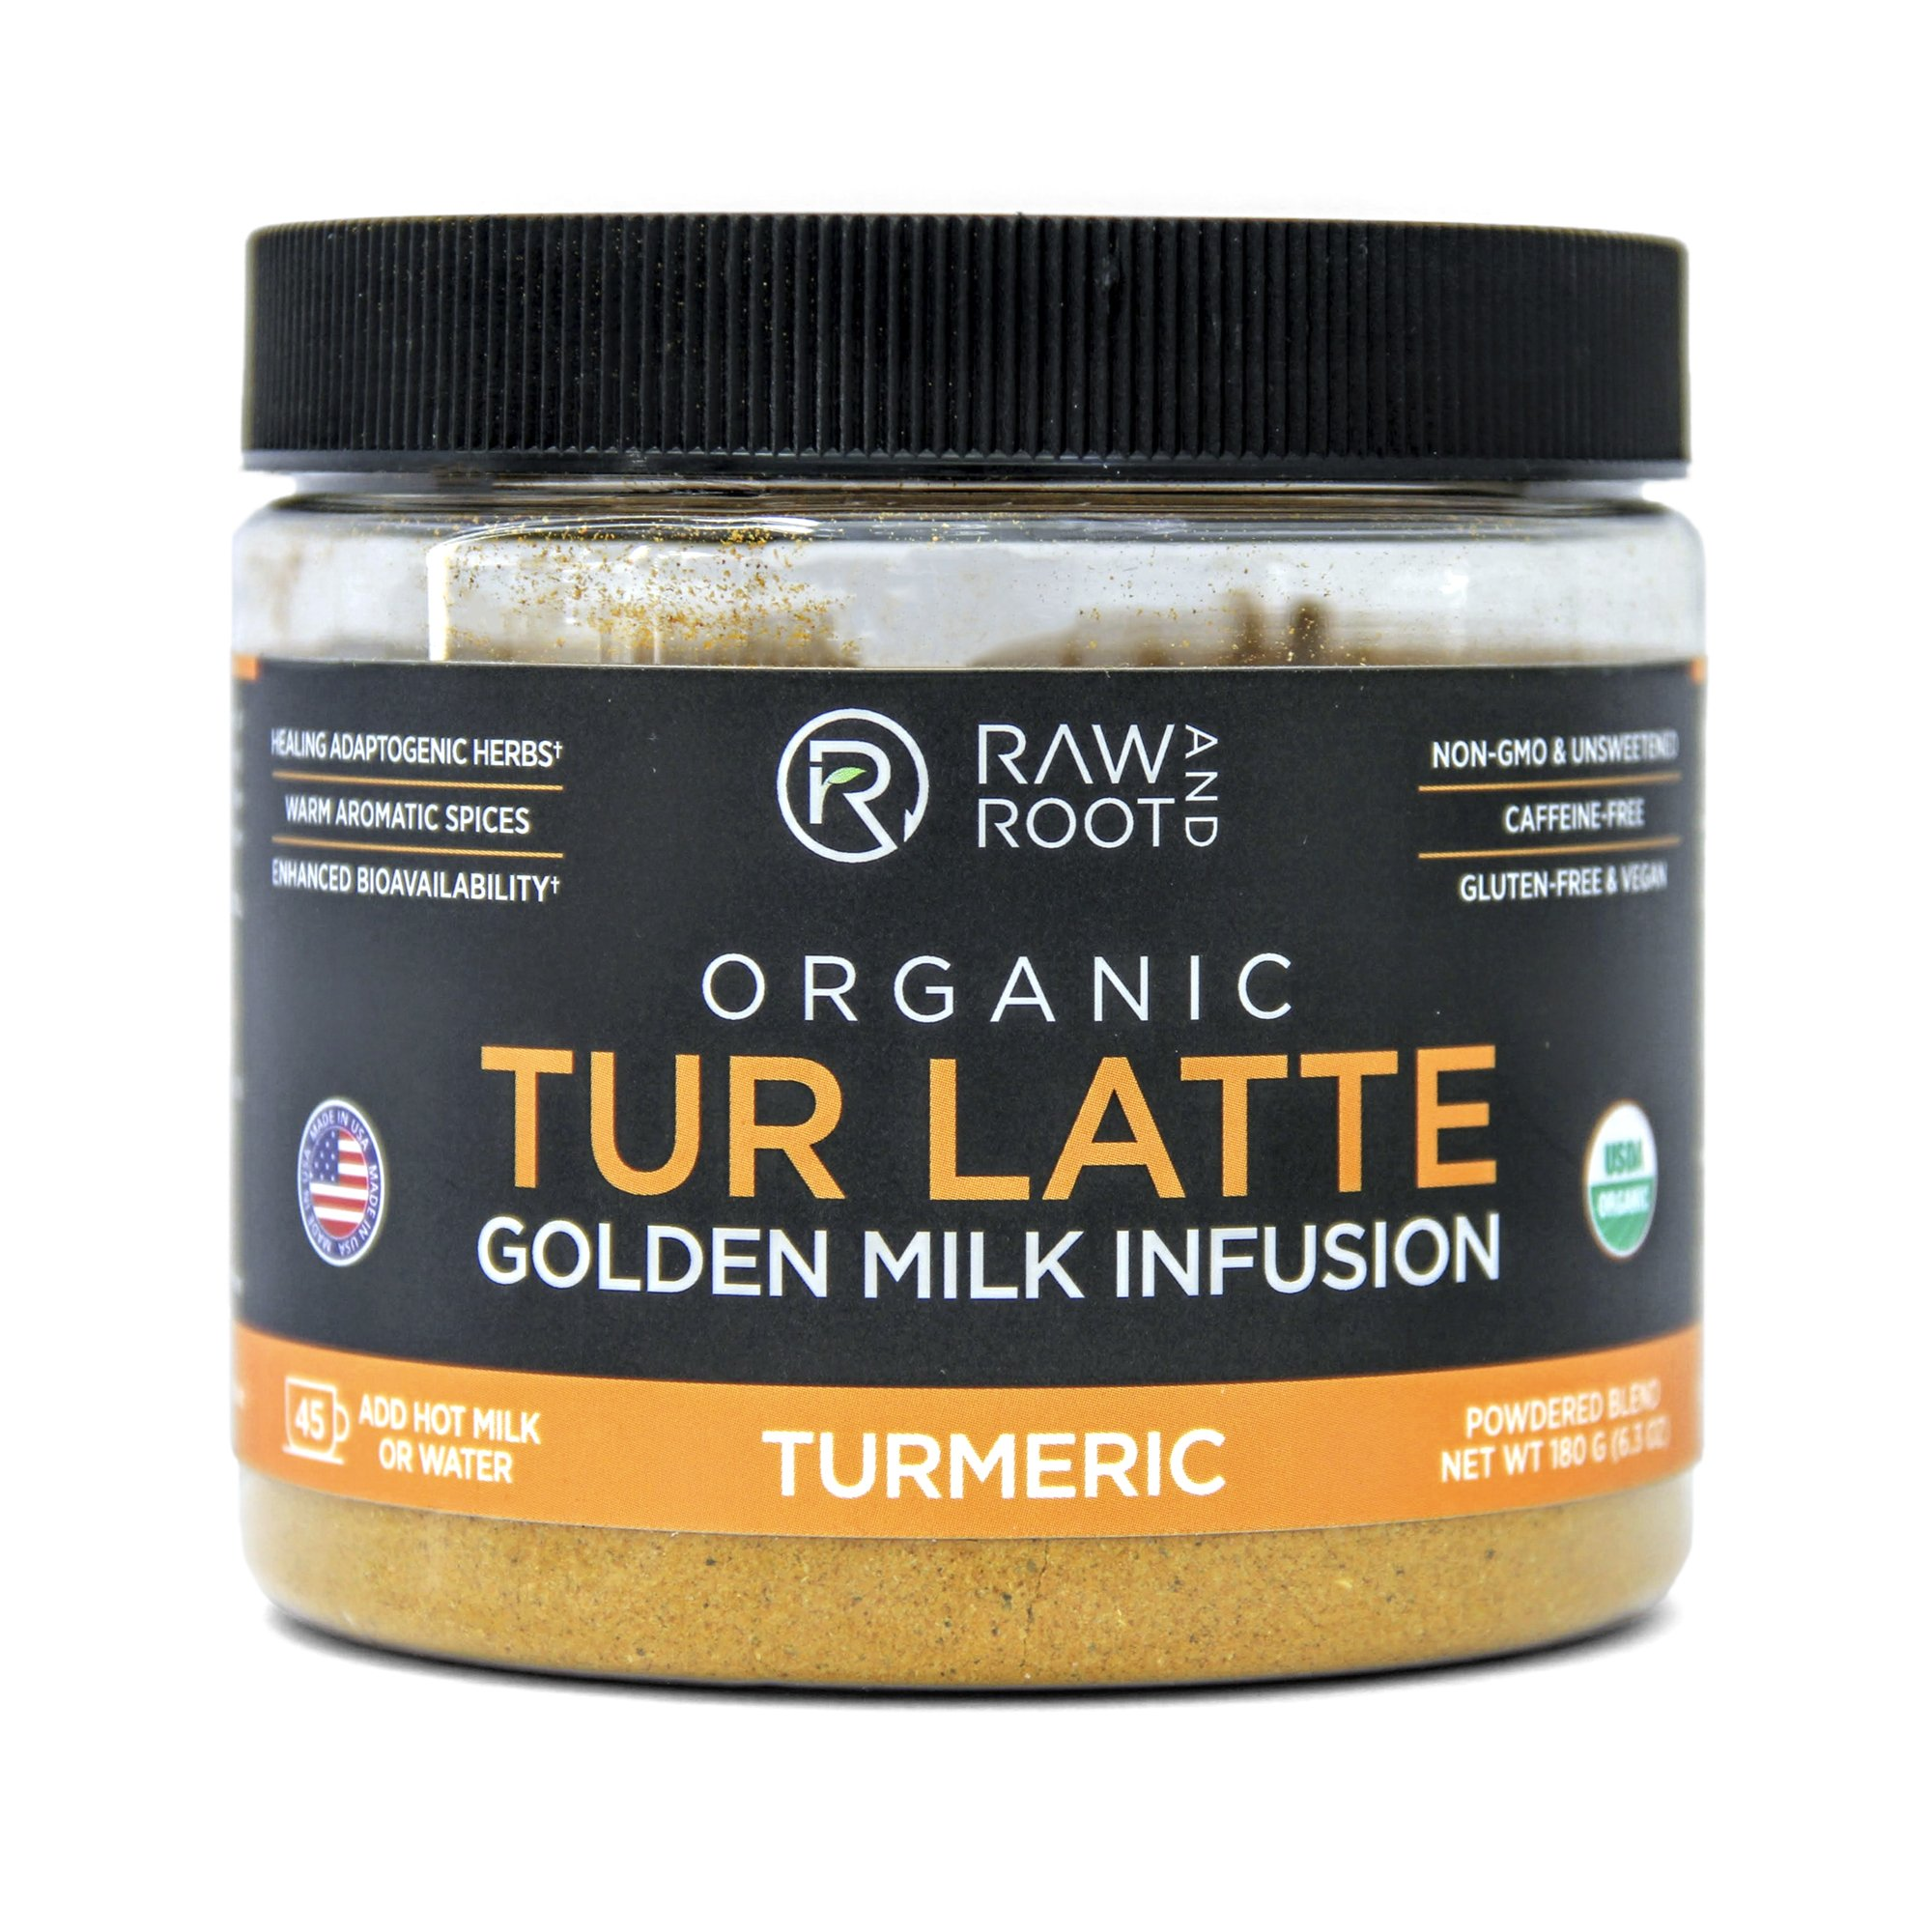 TUR LATTE - USDA Certified Organic Turmeric Latte Mix - 45 servings (6.3 oz) - by RAW AND ROOT - Makes Turmeric Golden Milk - Anti-Inflammatory, USDA Organic, Non GMO, Vegan, Gluten-free, Unsweetened